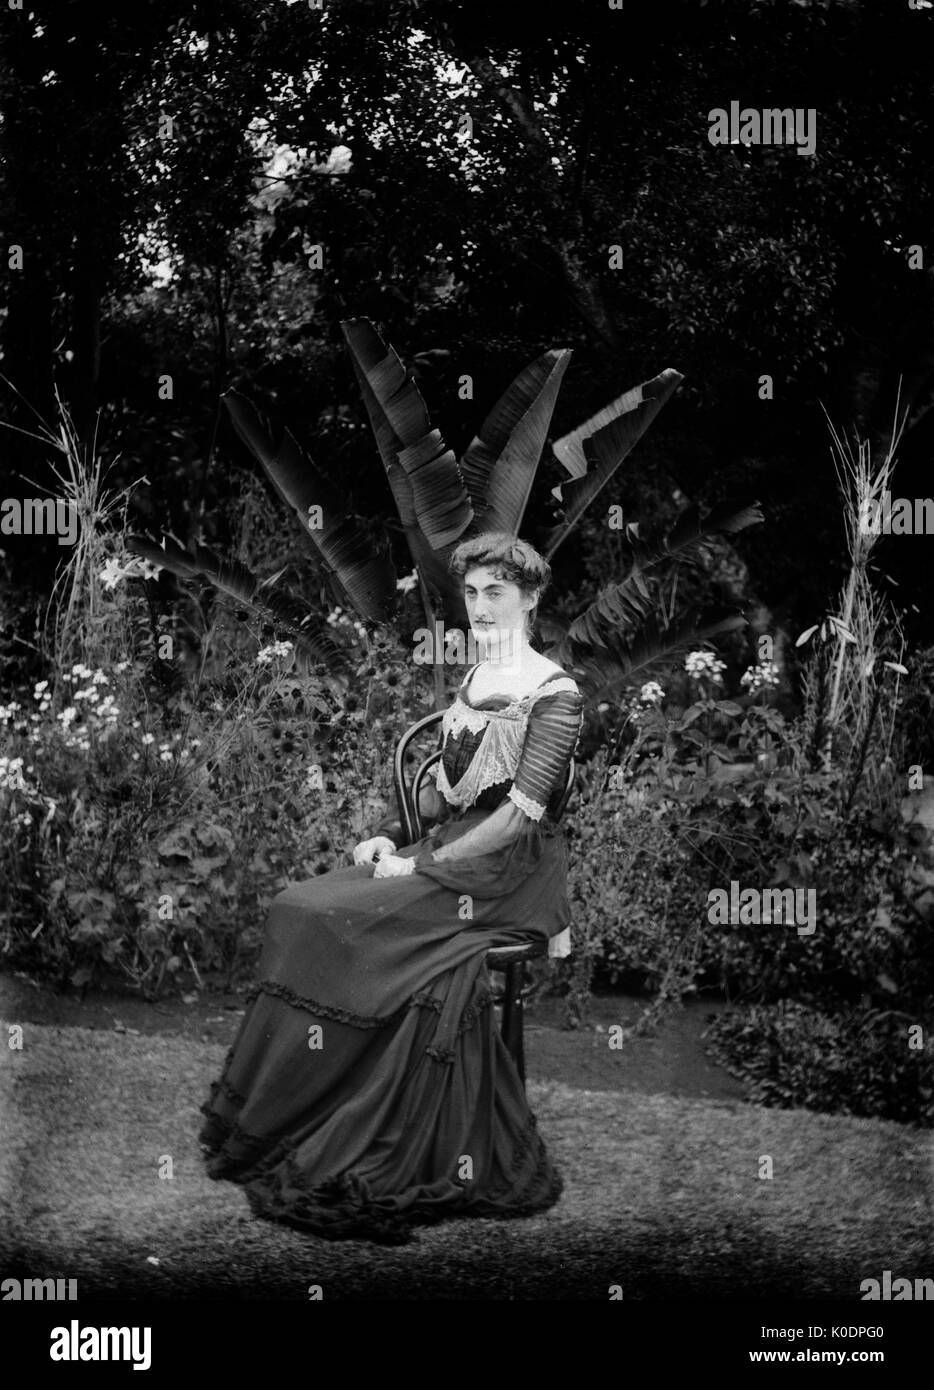 AJAXNETPHOTO. 1900-1910. LOCATION UNKNOWN. - PORTRAIT OF A YOUNG LADY IN EDWARDIAN DRESS - SEATED IN TROPICAL GARDEN Stock Photo